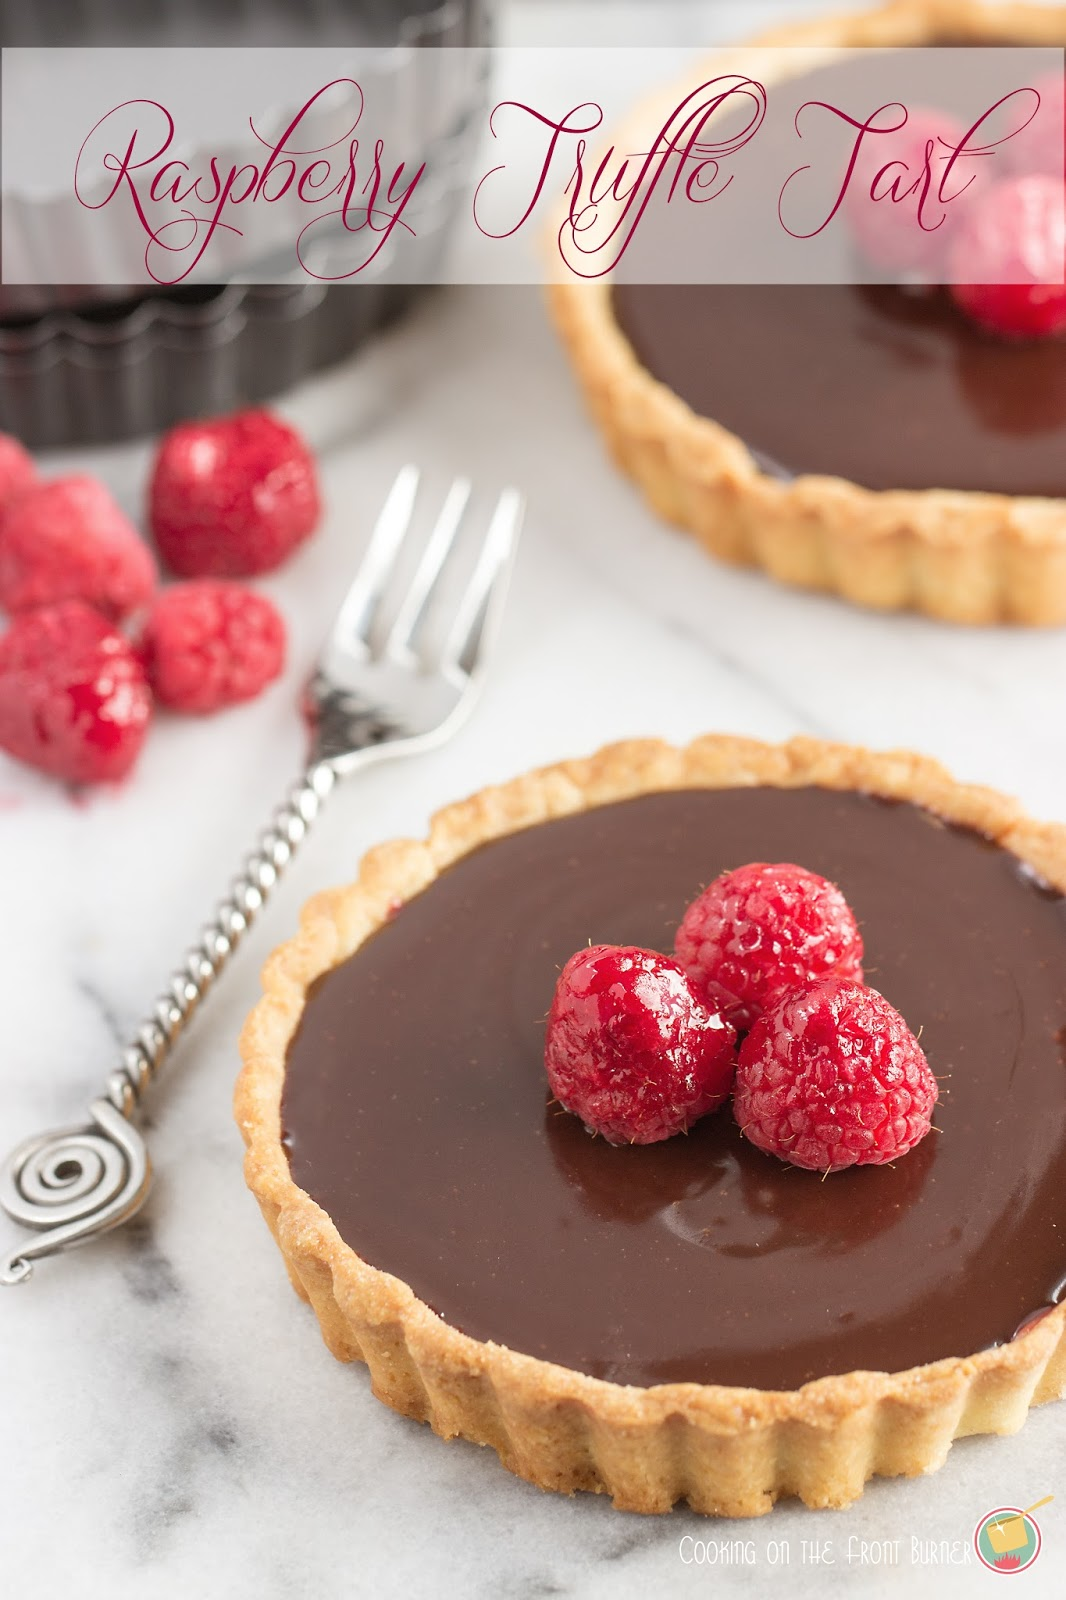 Raspberry Truffle Tart | Cooking on the Front Burner #chocolatetart #valentinesdessert